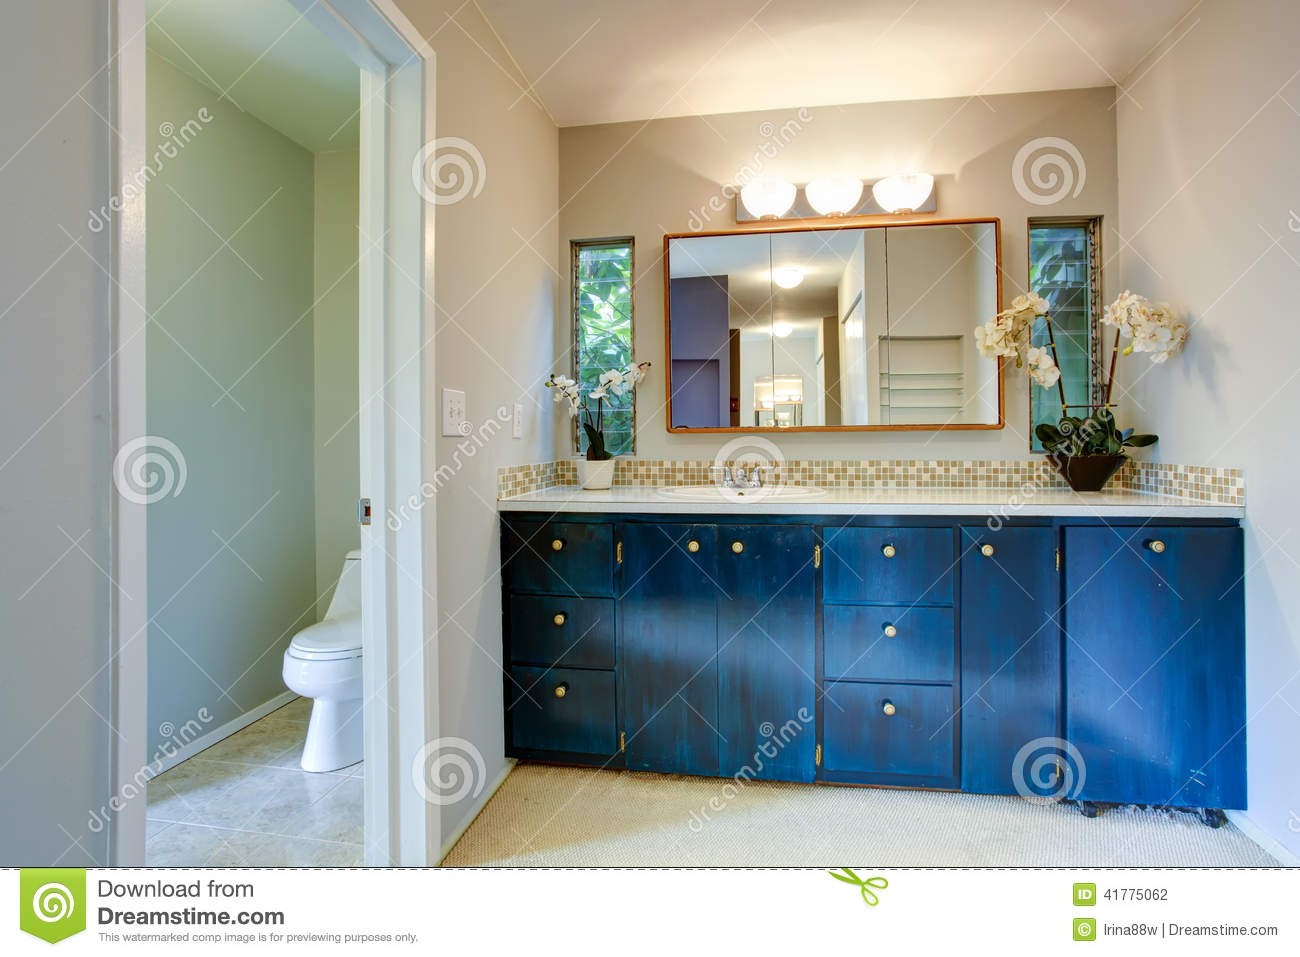 Royal Bathroom Vanity Cabinet With Flowers Stock Photo